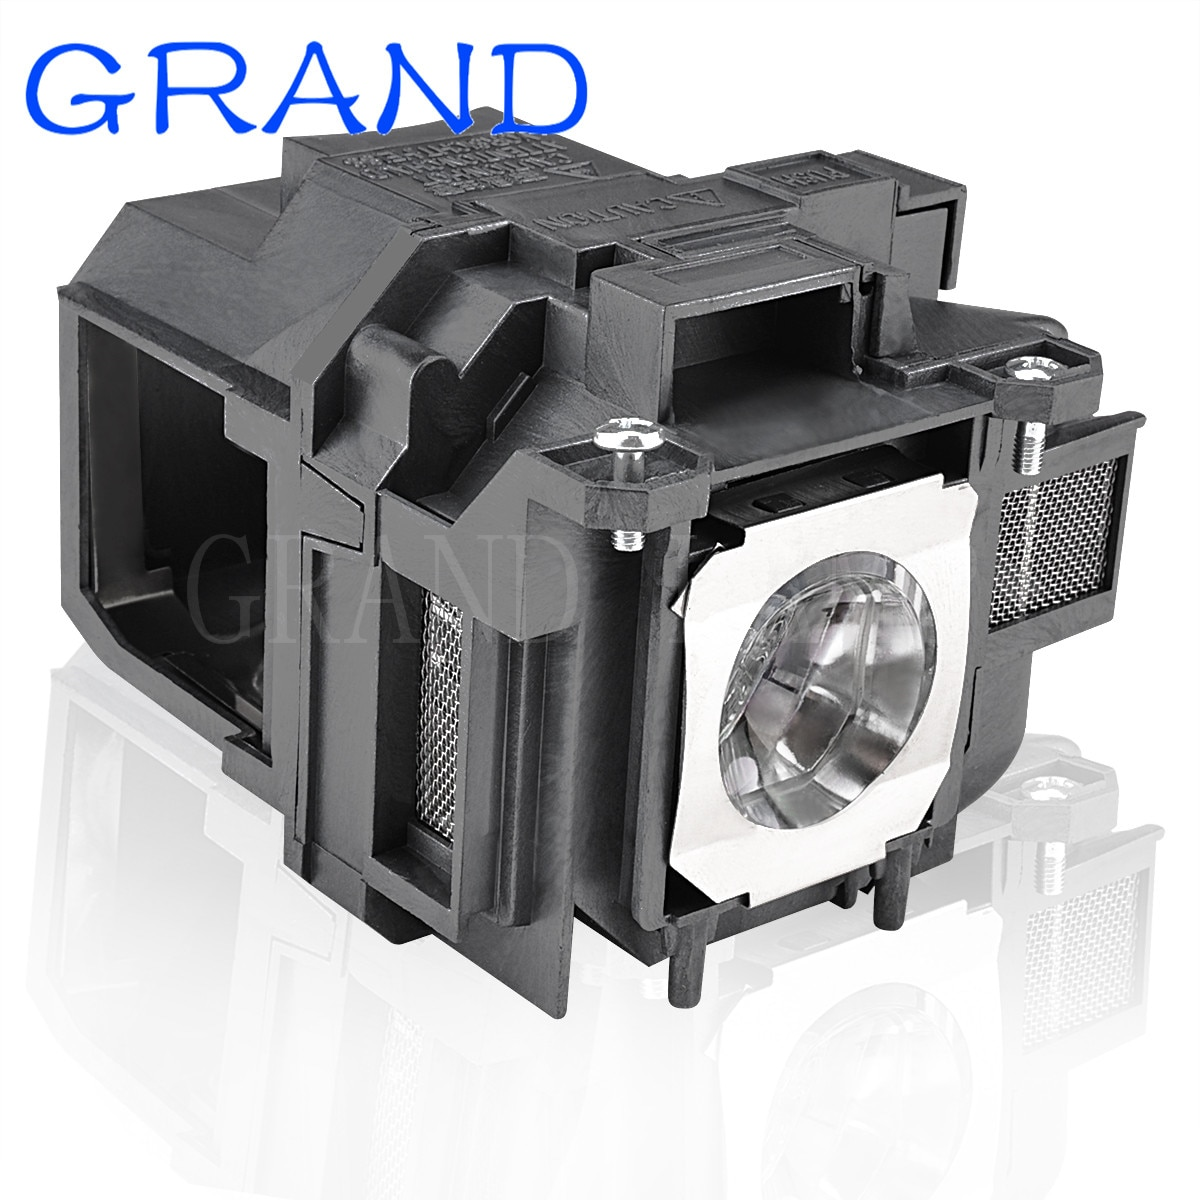 Replacement EB-X04 EB-X27 EB-X29 EB-X31 EB-X36 EX3240 EX5240 EX5250 EX7240 EX9200 ELPL88 V13H010L88 for Epson projector lamp elplp88 v13h010l88 for lamp projector eh tw5350 eh tw5300 eb s27 eb x31 eb w29 eb x04 eb x27 eb x29 eb x31 eb x36 ex3240